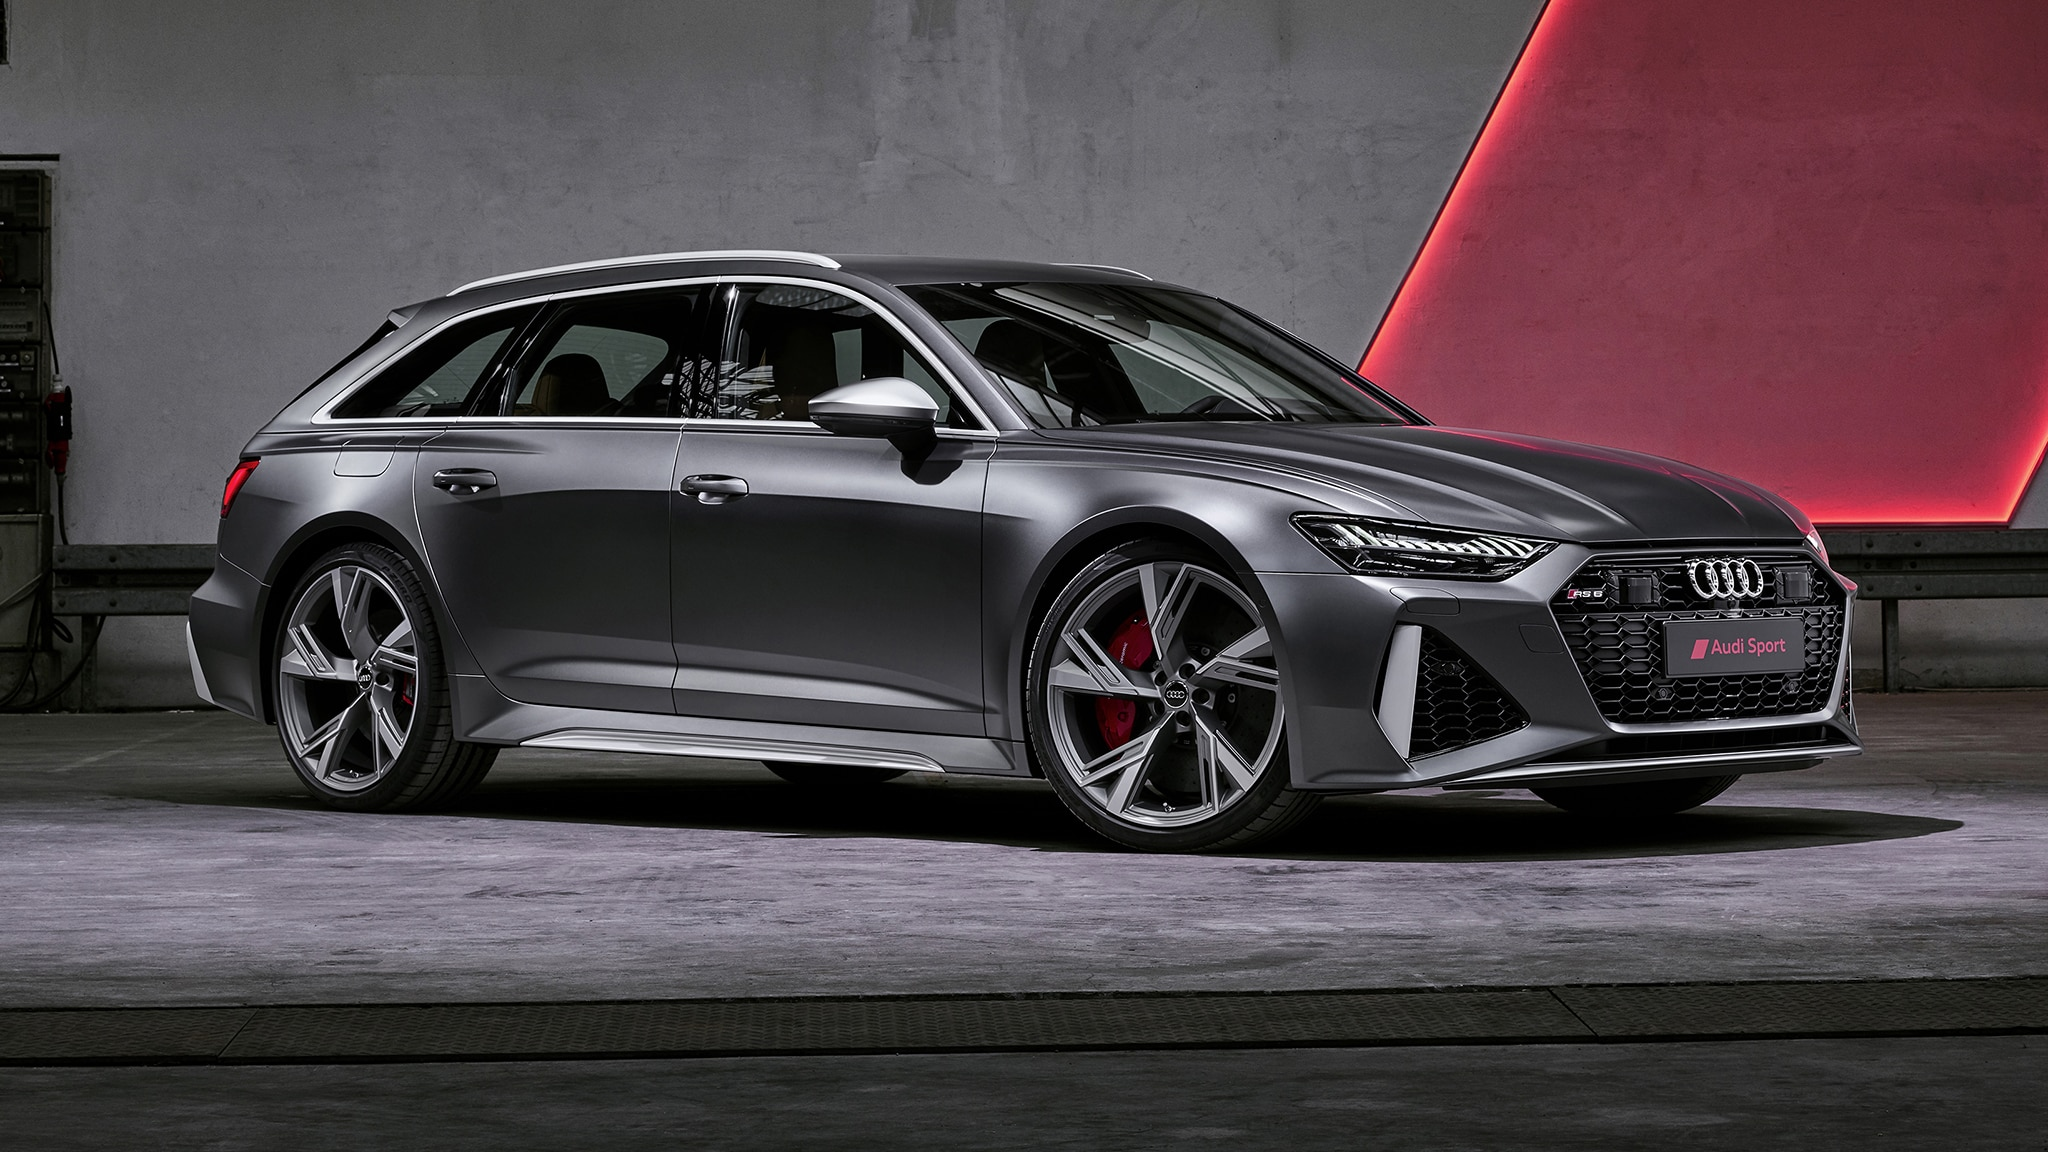 2020 audi rs6 avant full info: it's finally coming to